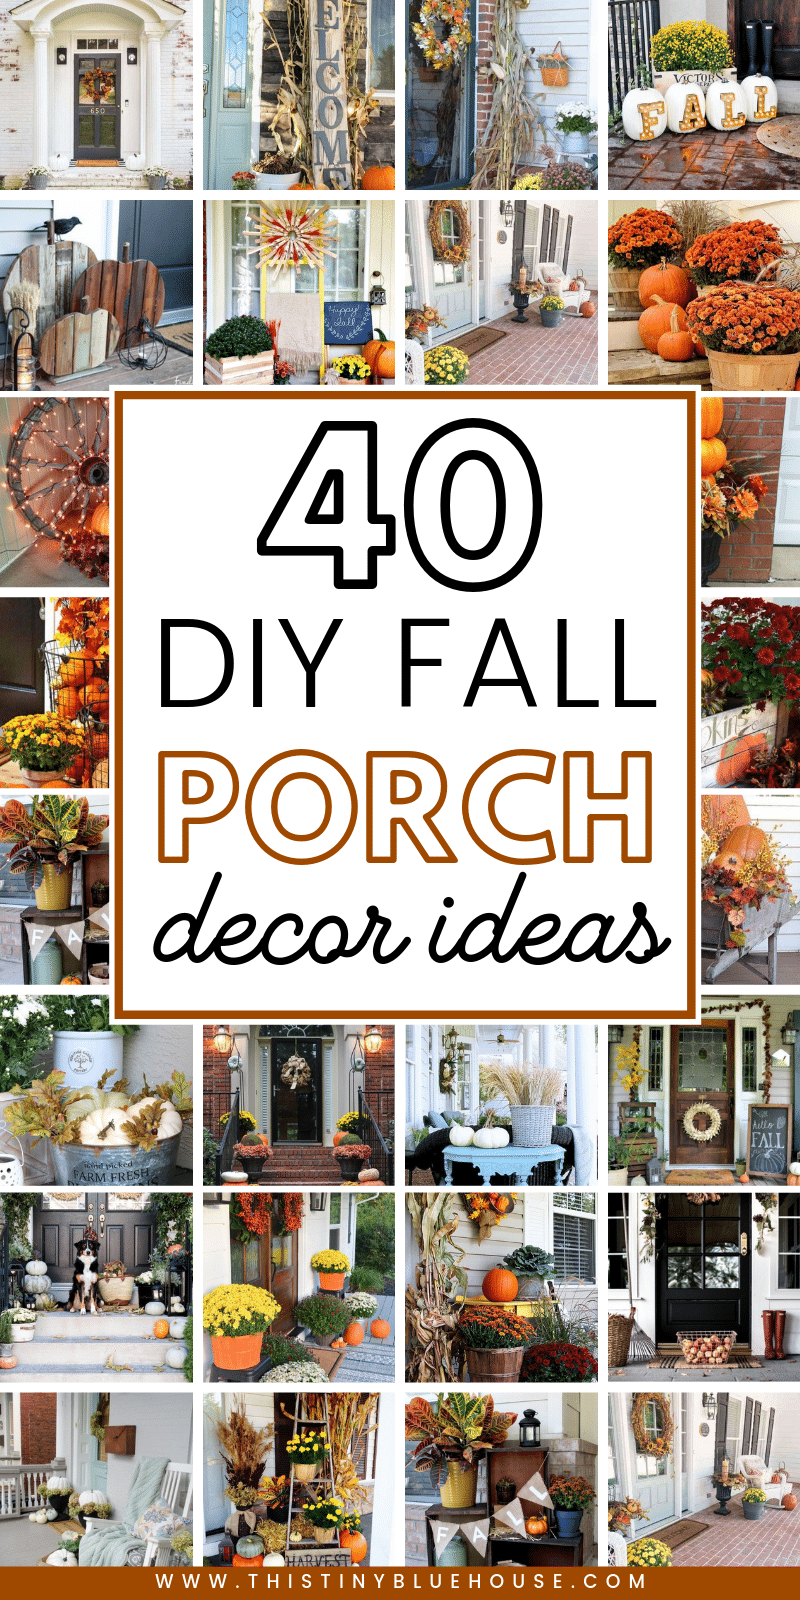 Glam up your front porch this autumn with one or a collection of these 40 gorgeous fall DIY porch decor ideas. These stunning porch ideas are guaranteed to make your porch stand out in your neighborhood. #fallfrontporch #fallporch #fallporchdecorations #fallporchfarmhouse #fallporchideas #fallporchdiy #autumnporch #autumnporchdiys